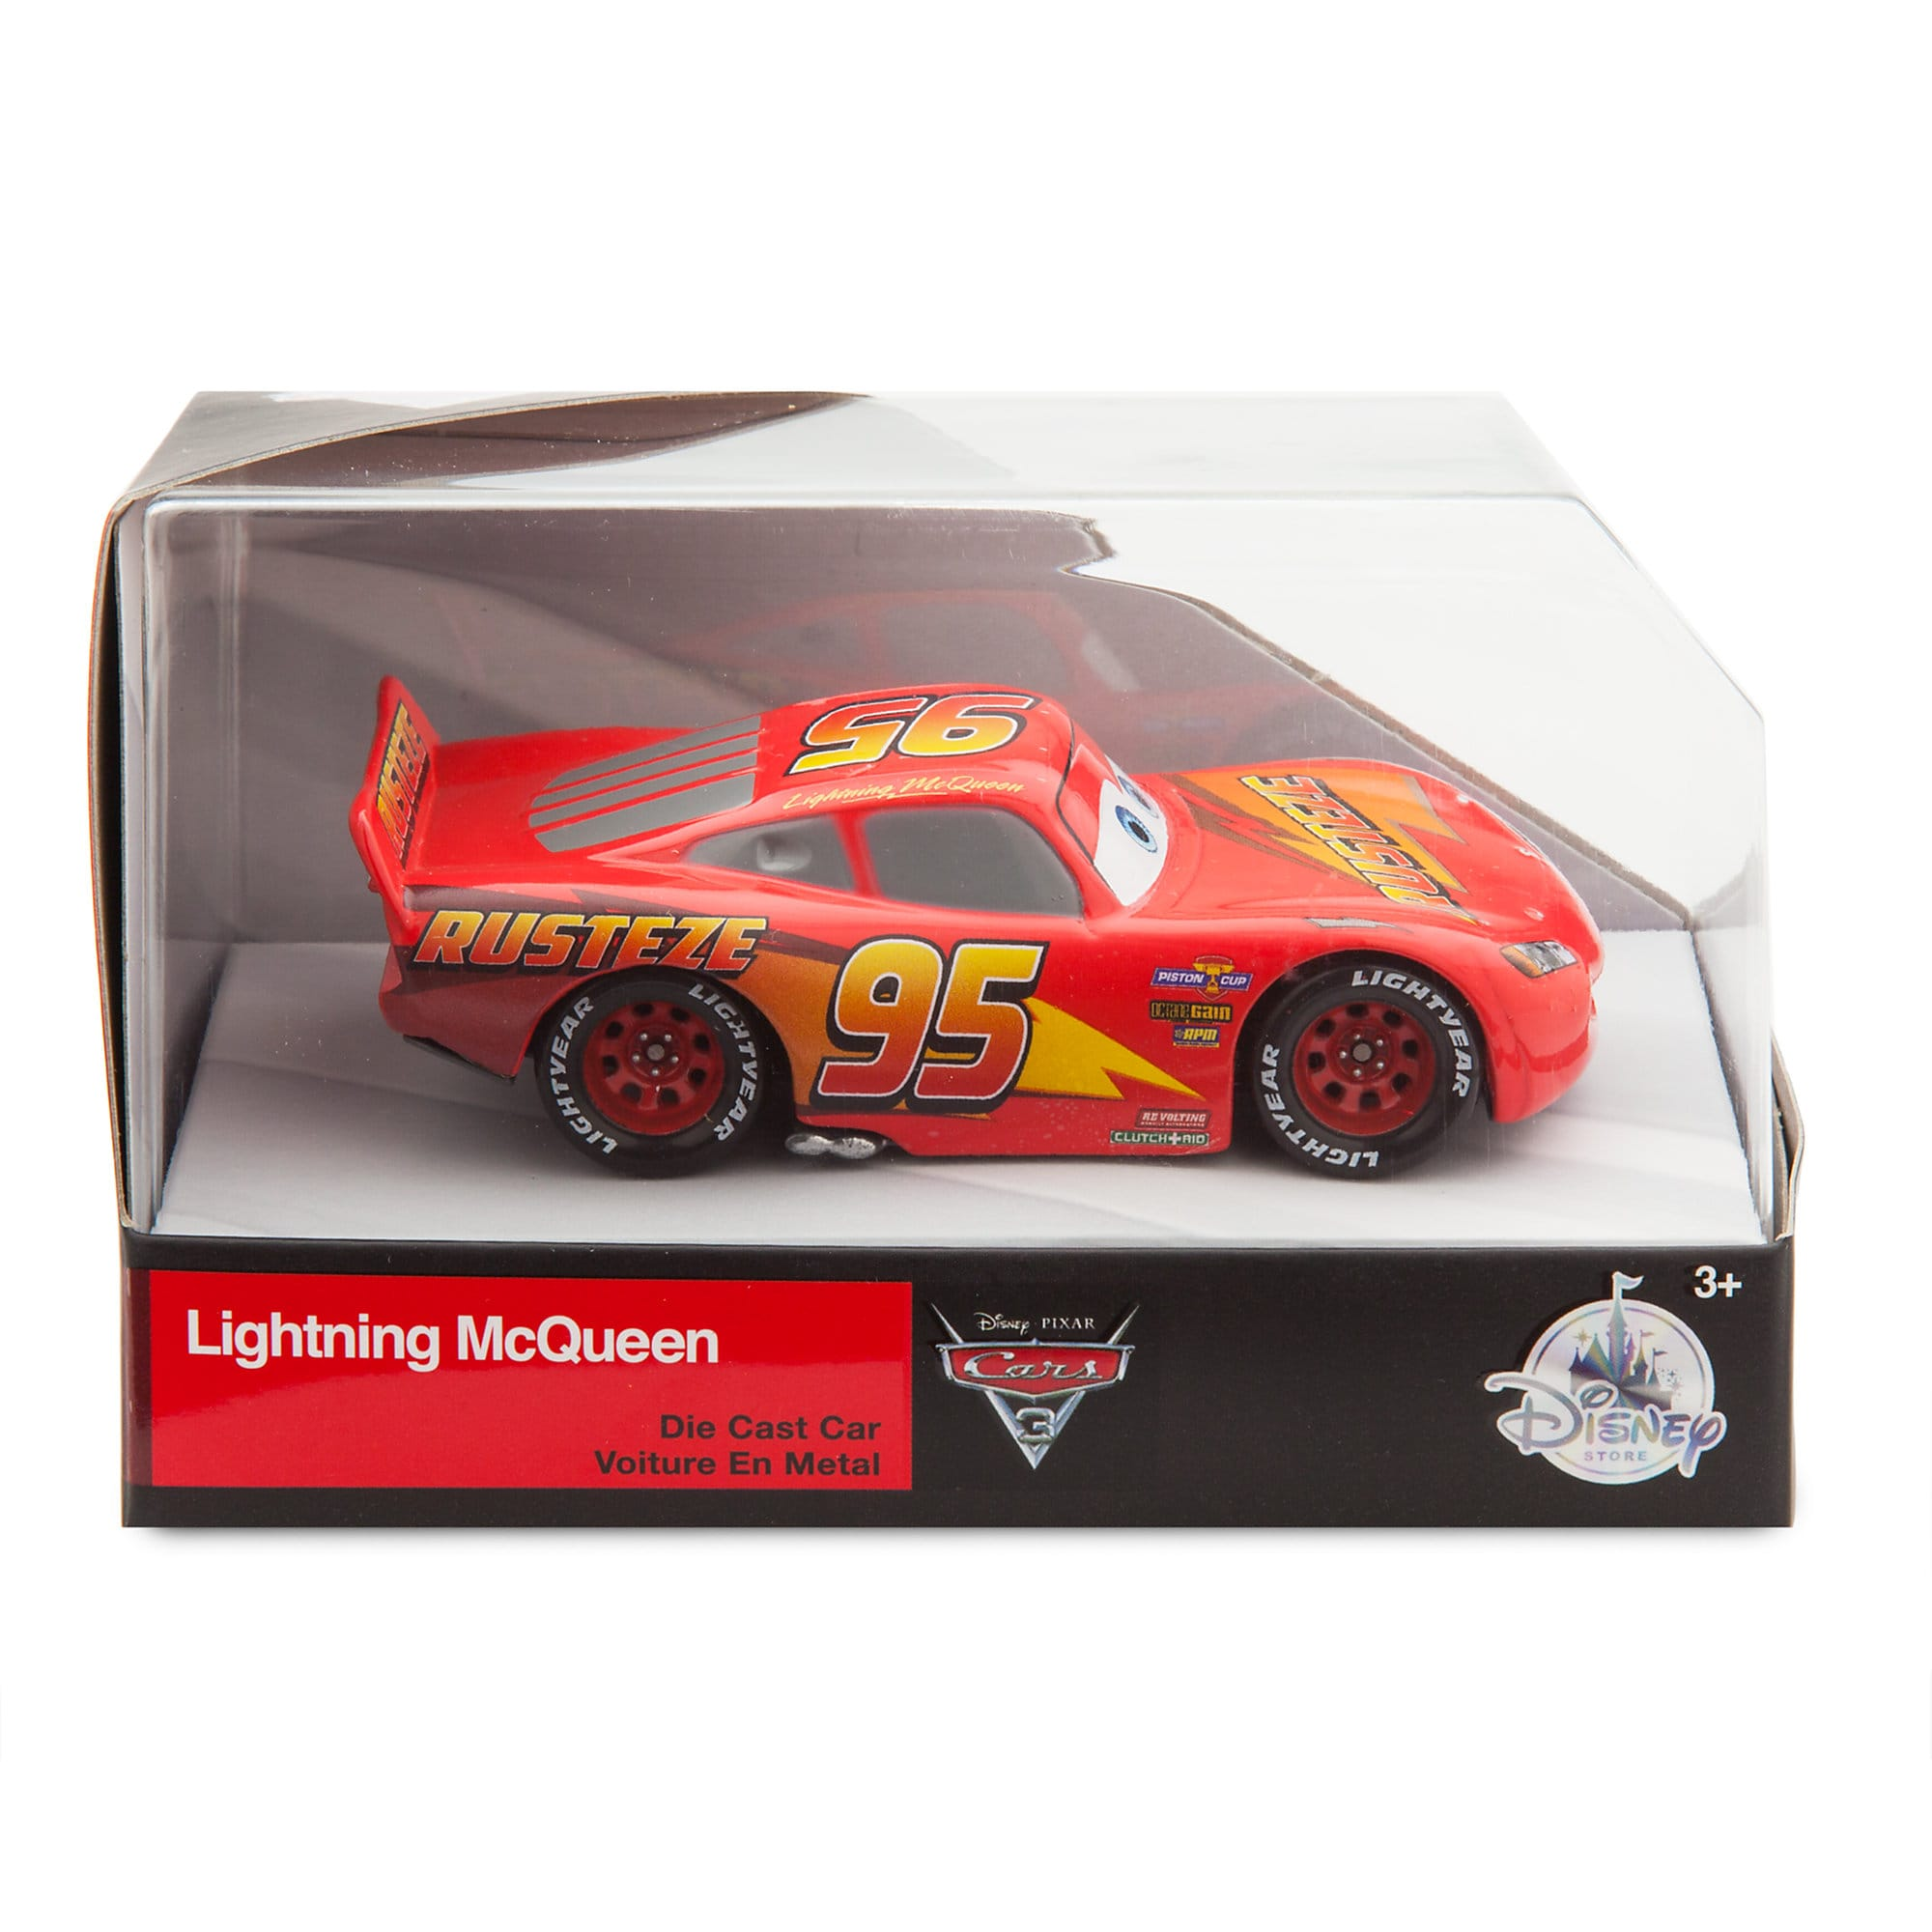 Lightning McQueen Die Cast Car - Cars 3  sc 1 st  shopDisney & Lightning McQueen Die Cast Car - Cars 3 | shopDisney azcodes.com